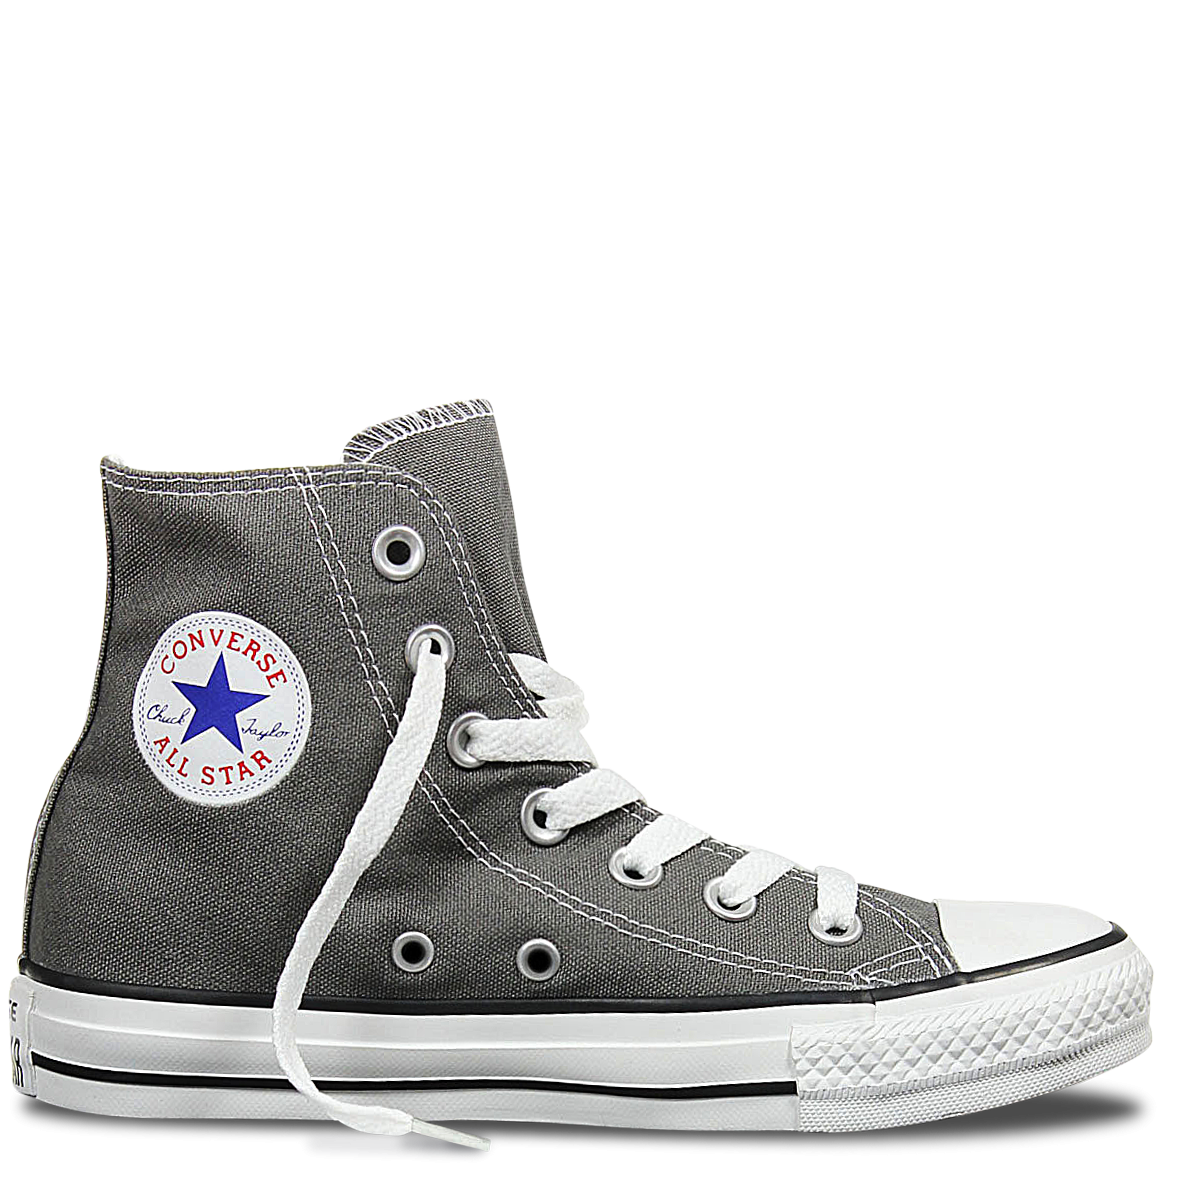 6418c55f06a4 Converse Hi Charcoal Canvas Chuck Taylor All Star Sneakers – Famous Rock  Shop